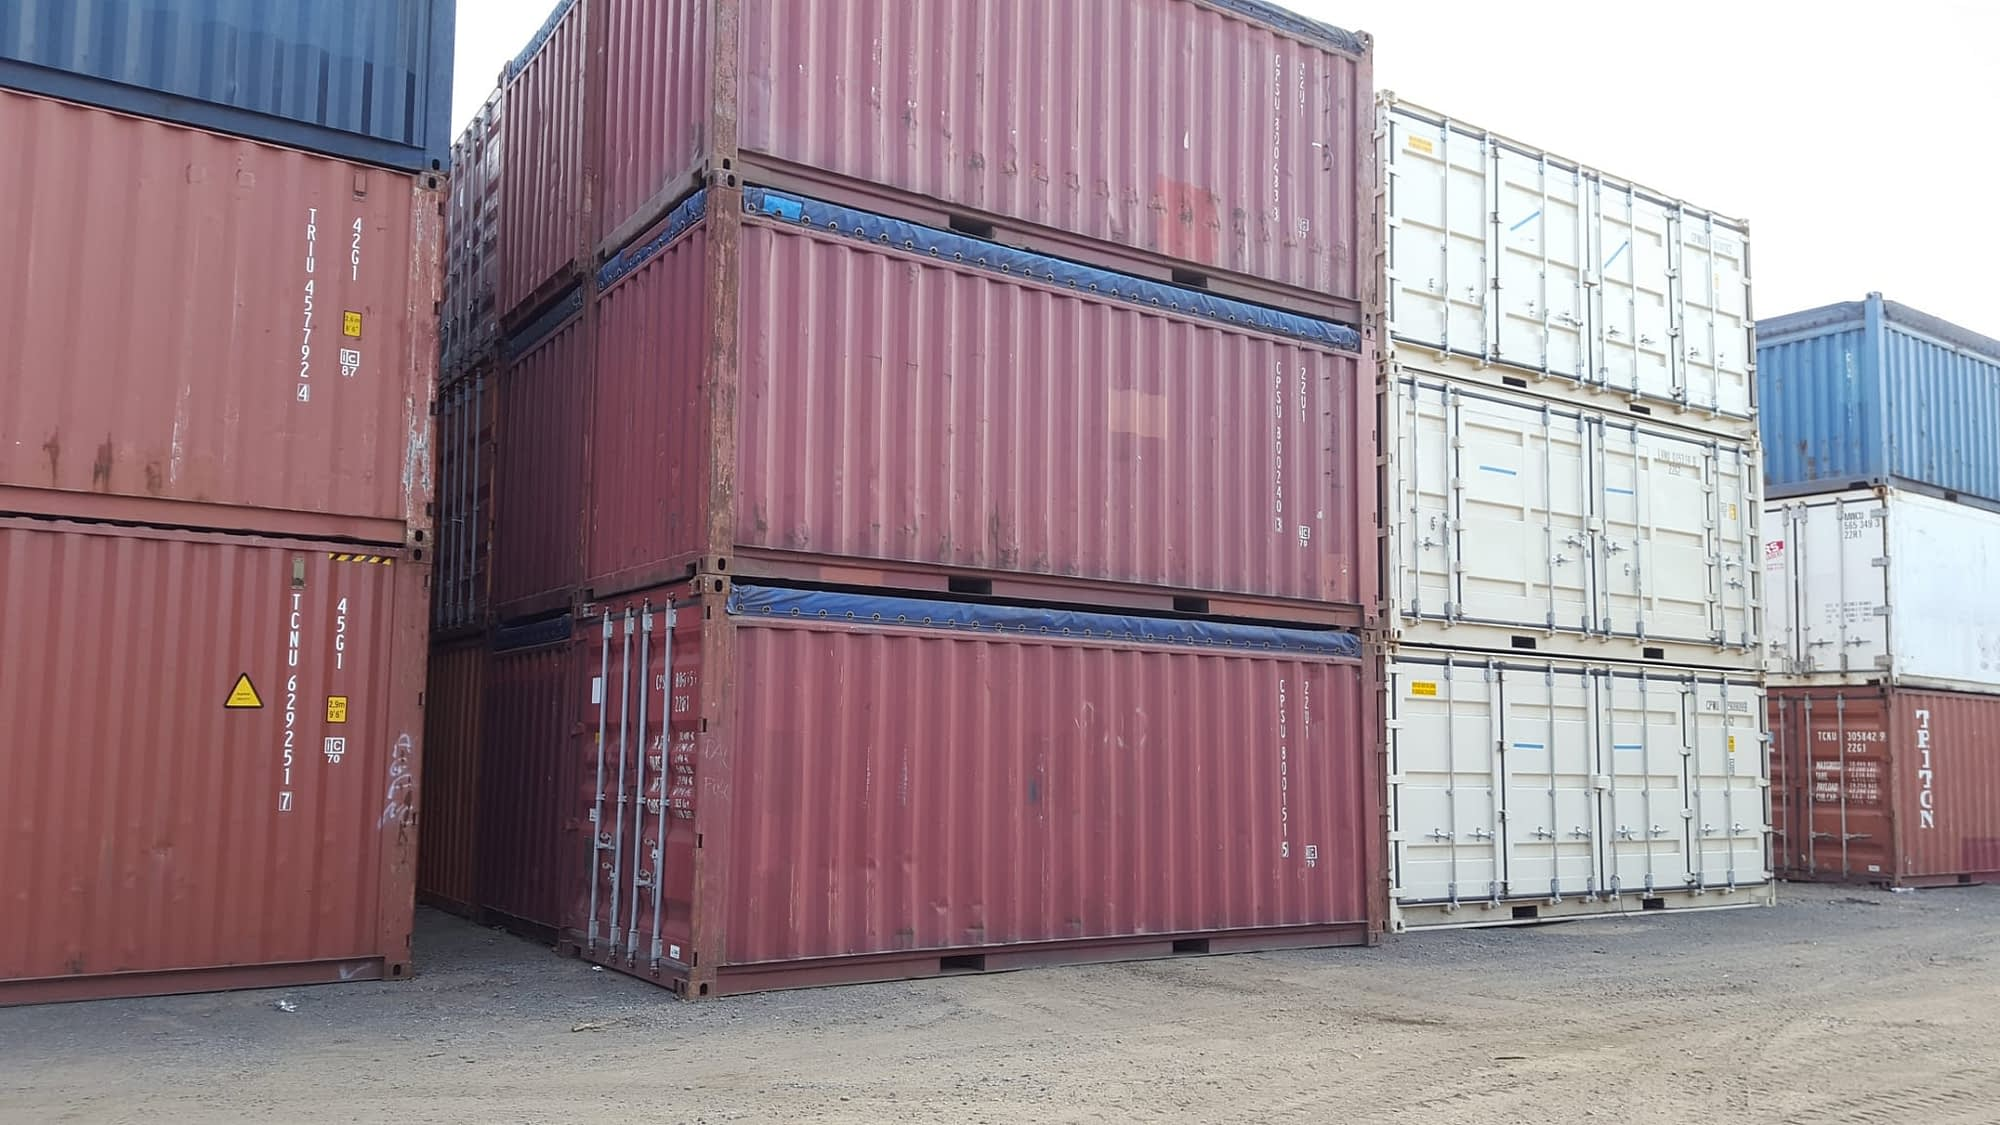 TRS stocks 20ft long canvas top opentop shipping containers